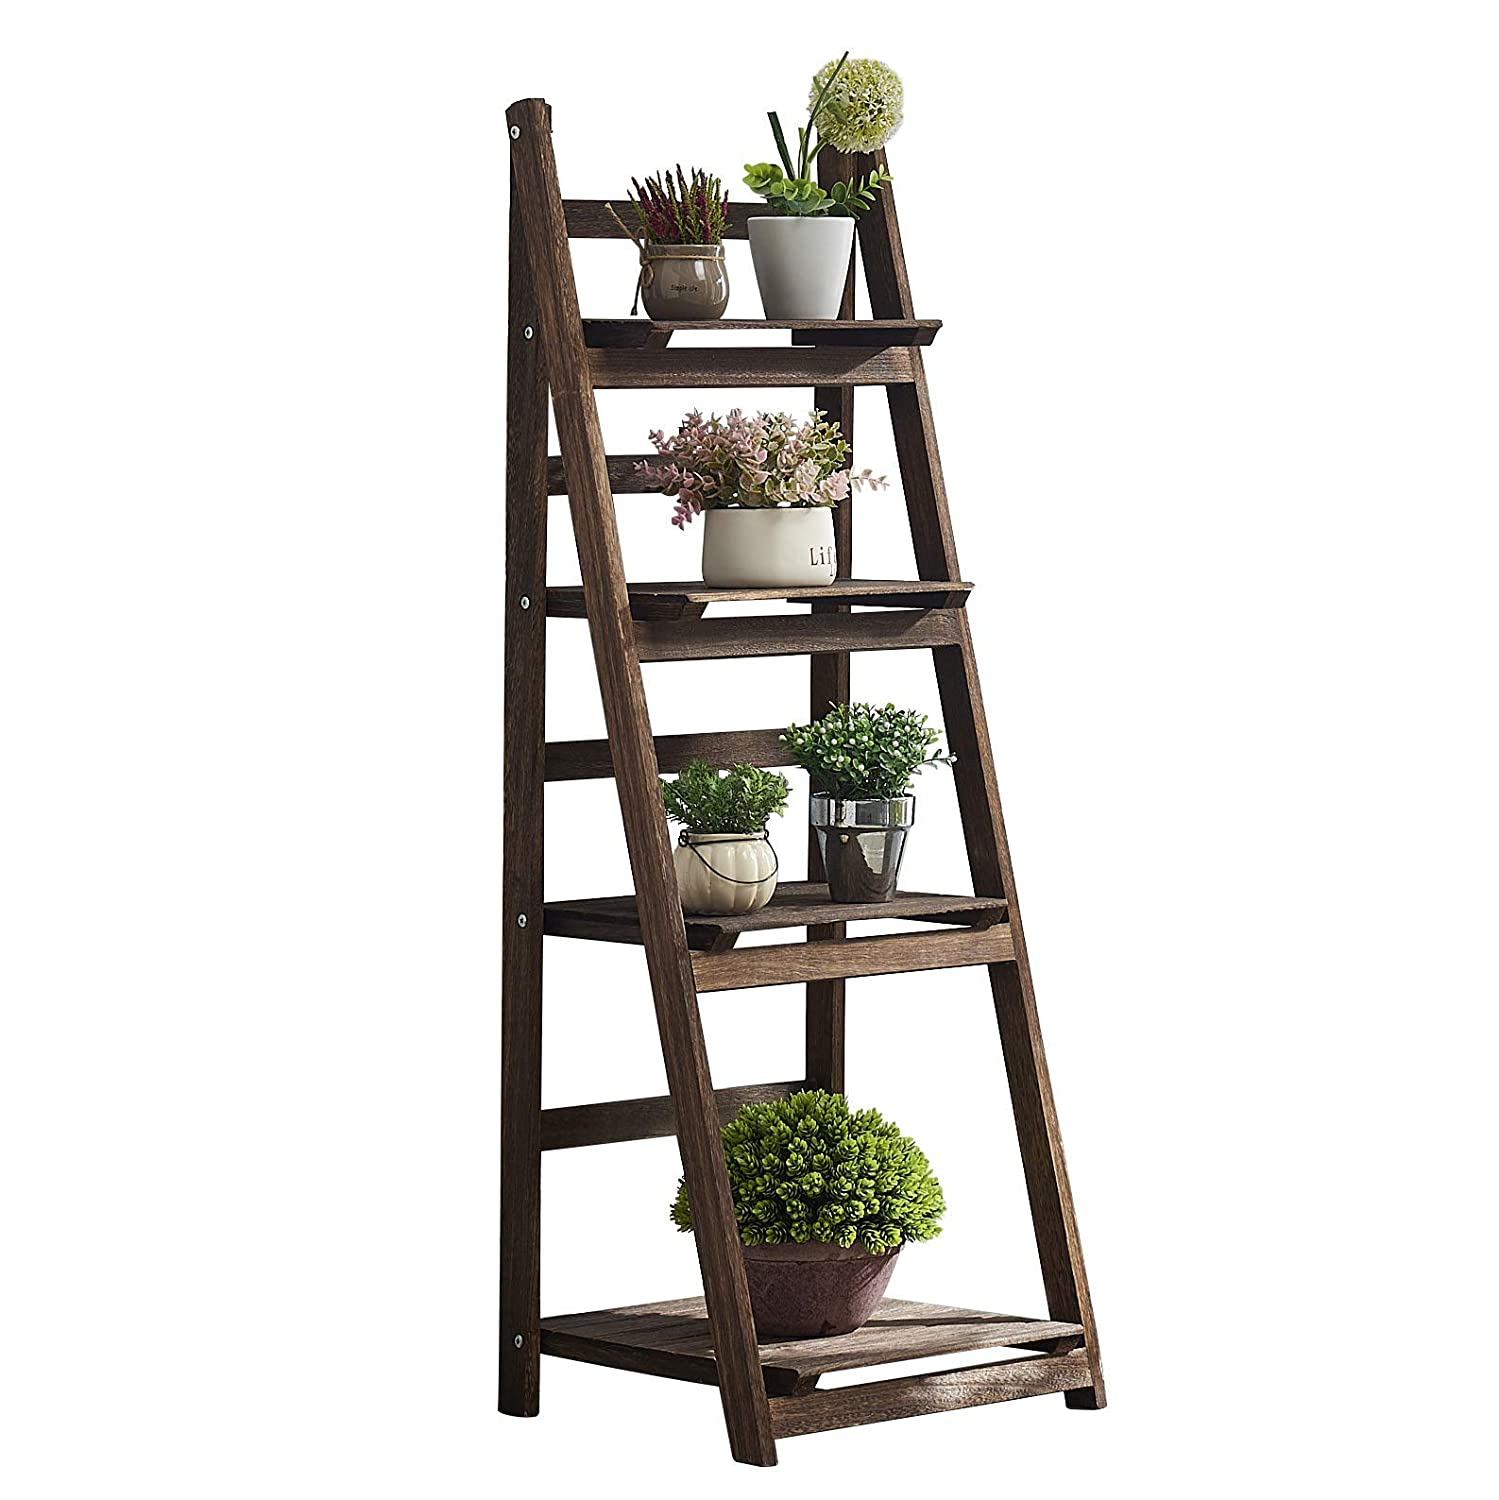 Amazoncom Rhf Foldable Ladder Shelf Plant Stand Indoor Flower